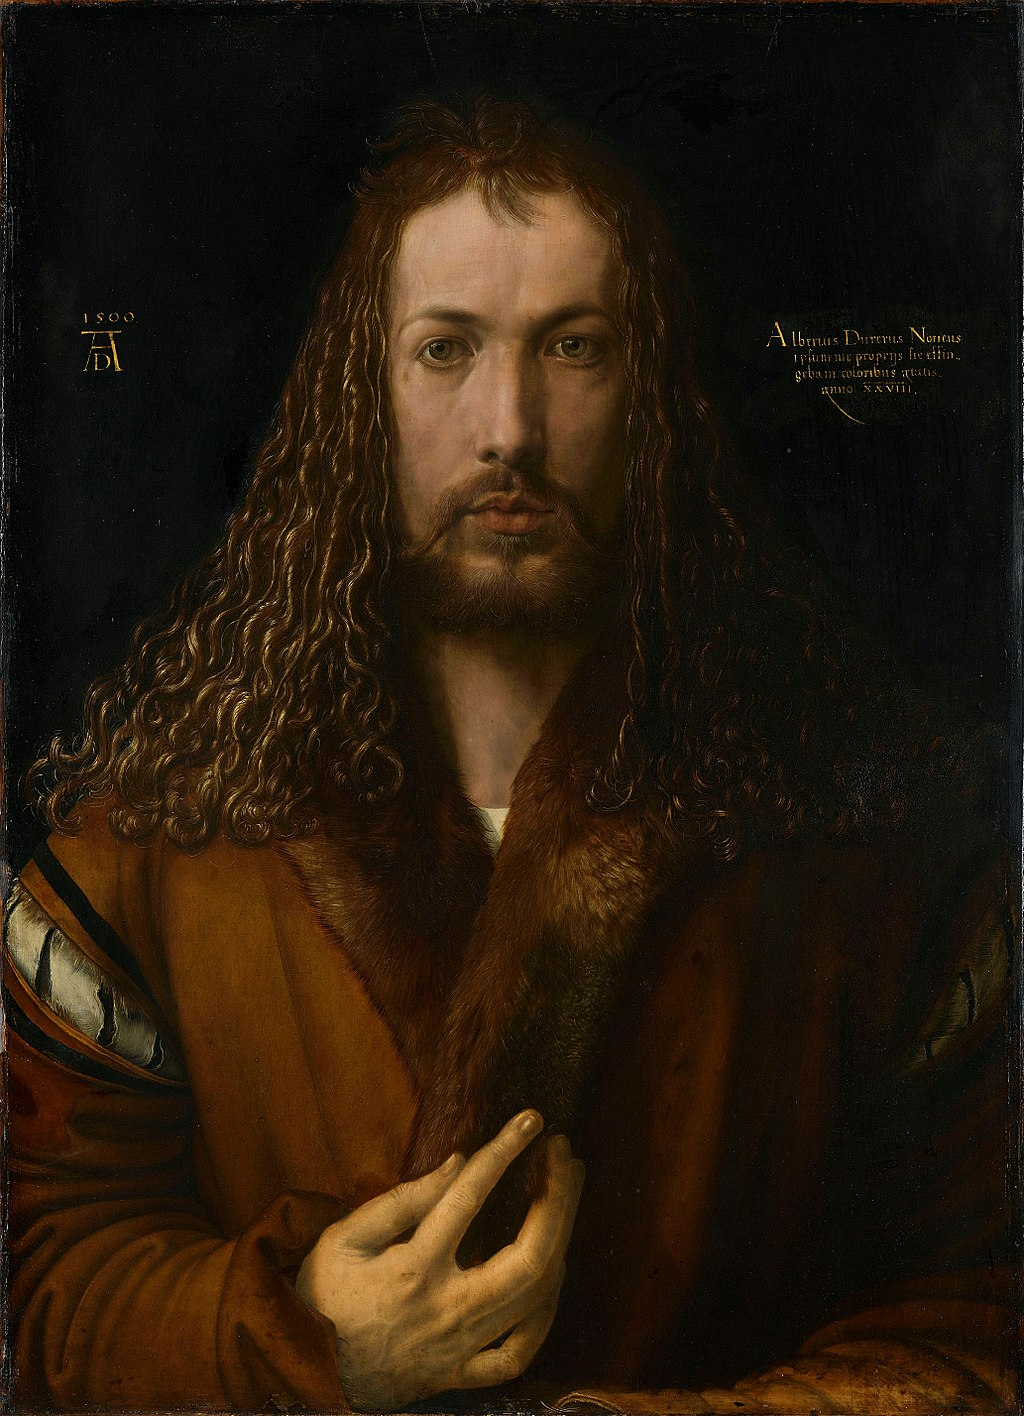 Albrecht Durer's Self-Portrait of 1500